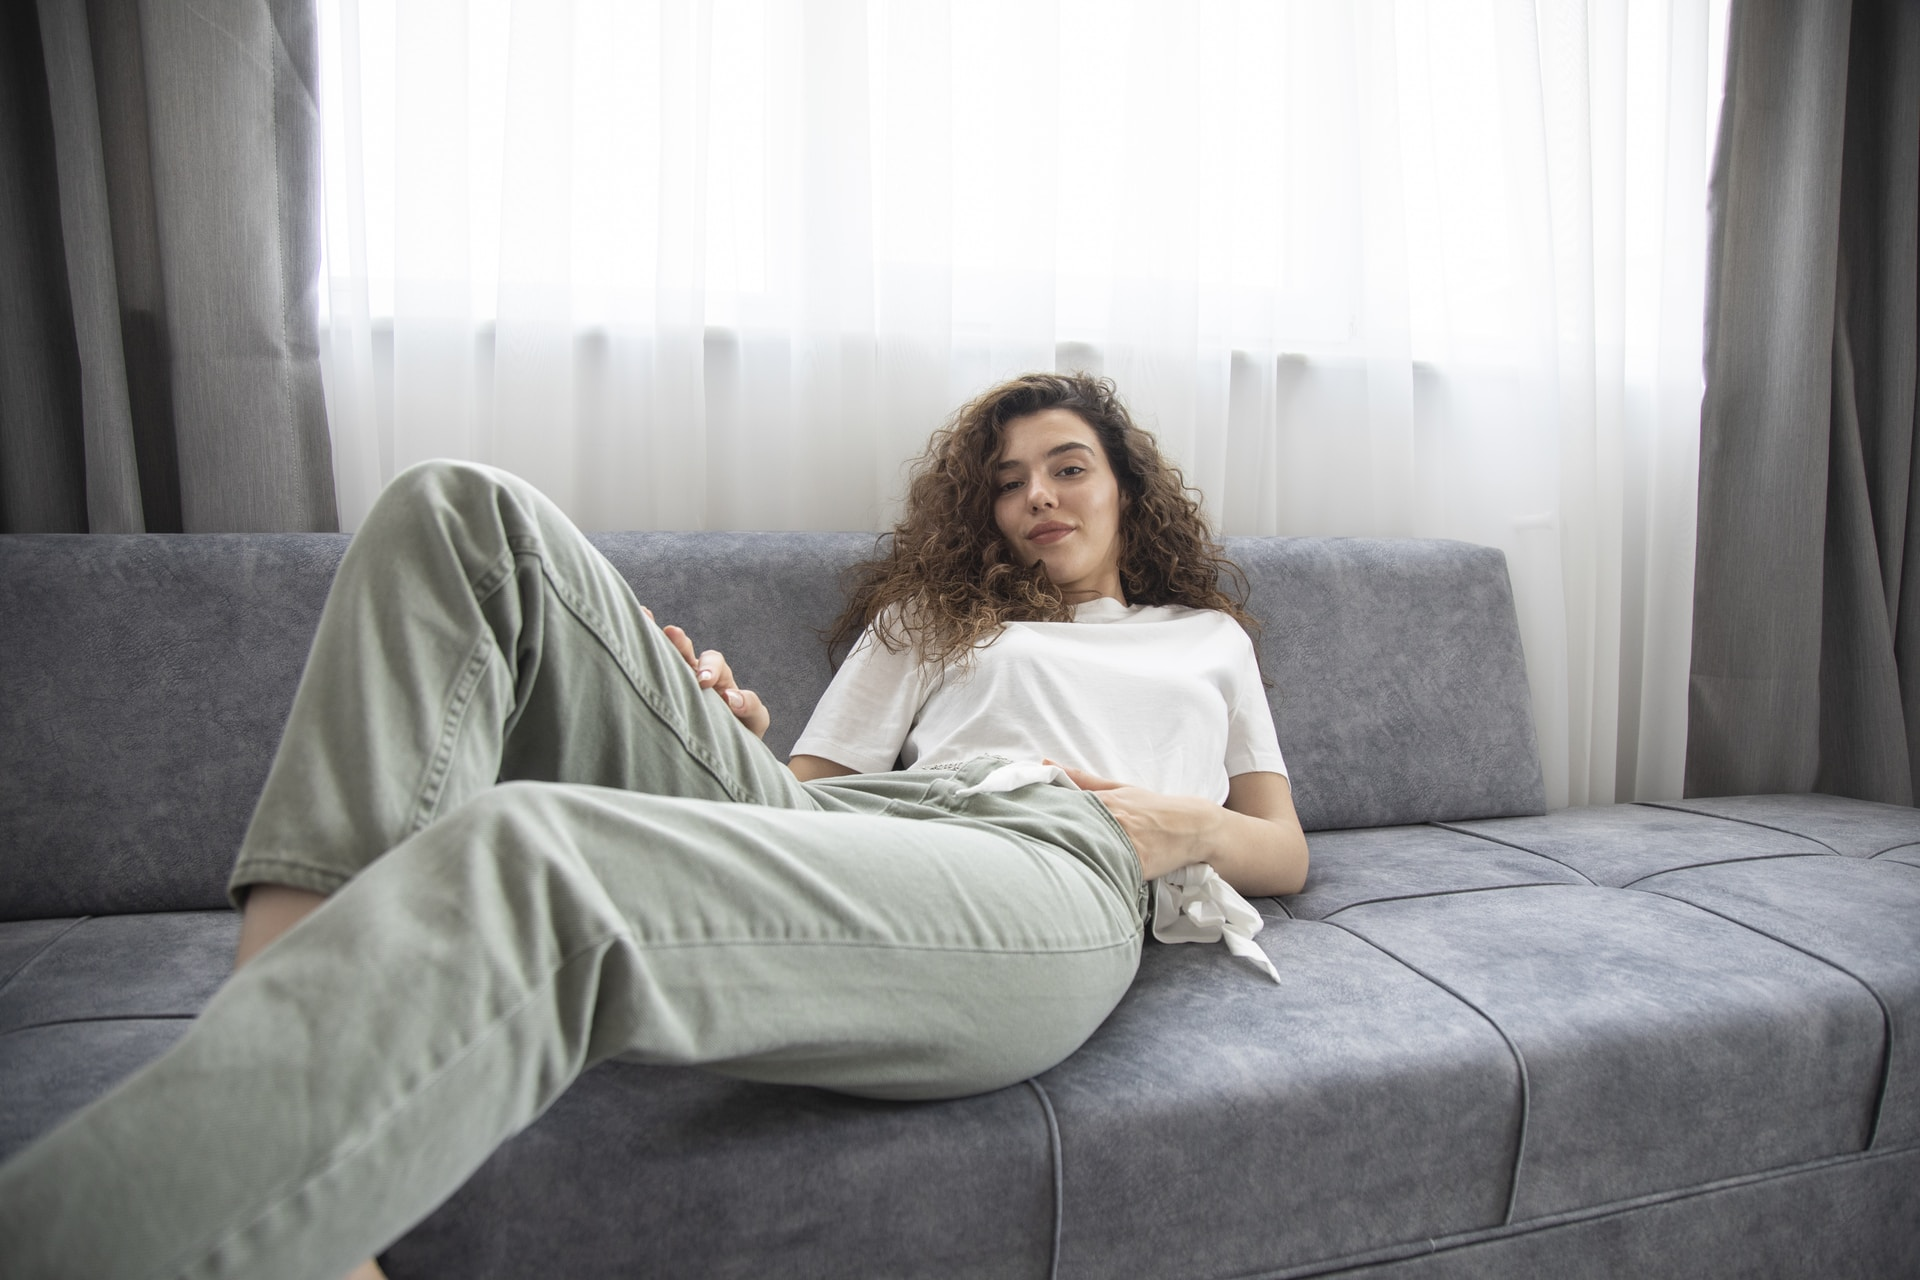 woman in green shirt lying on gray couch